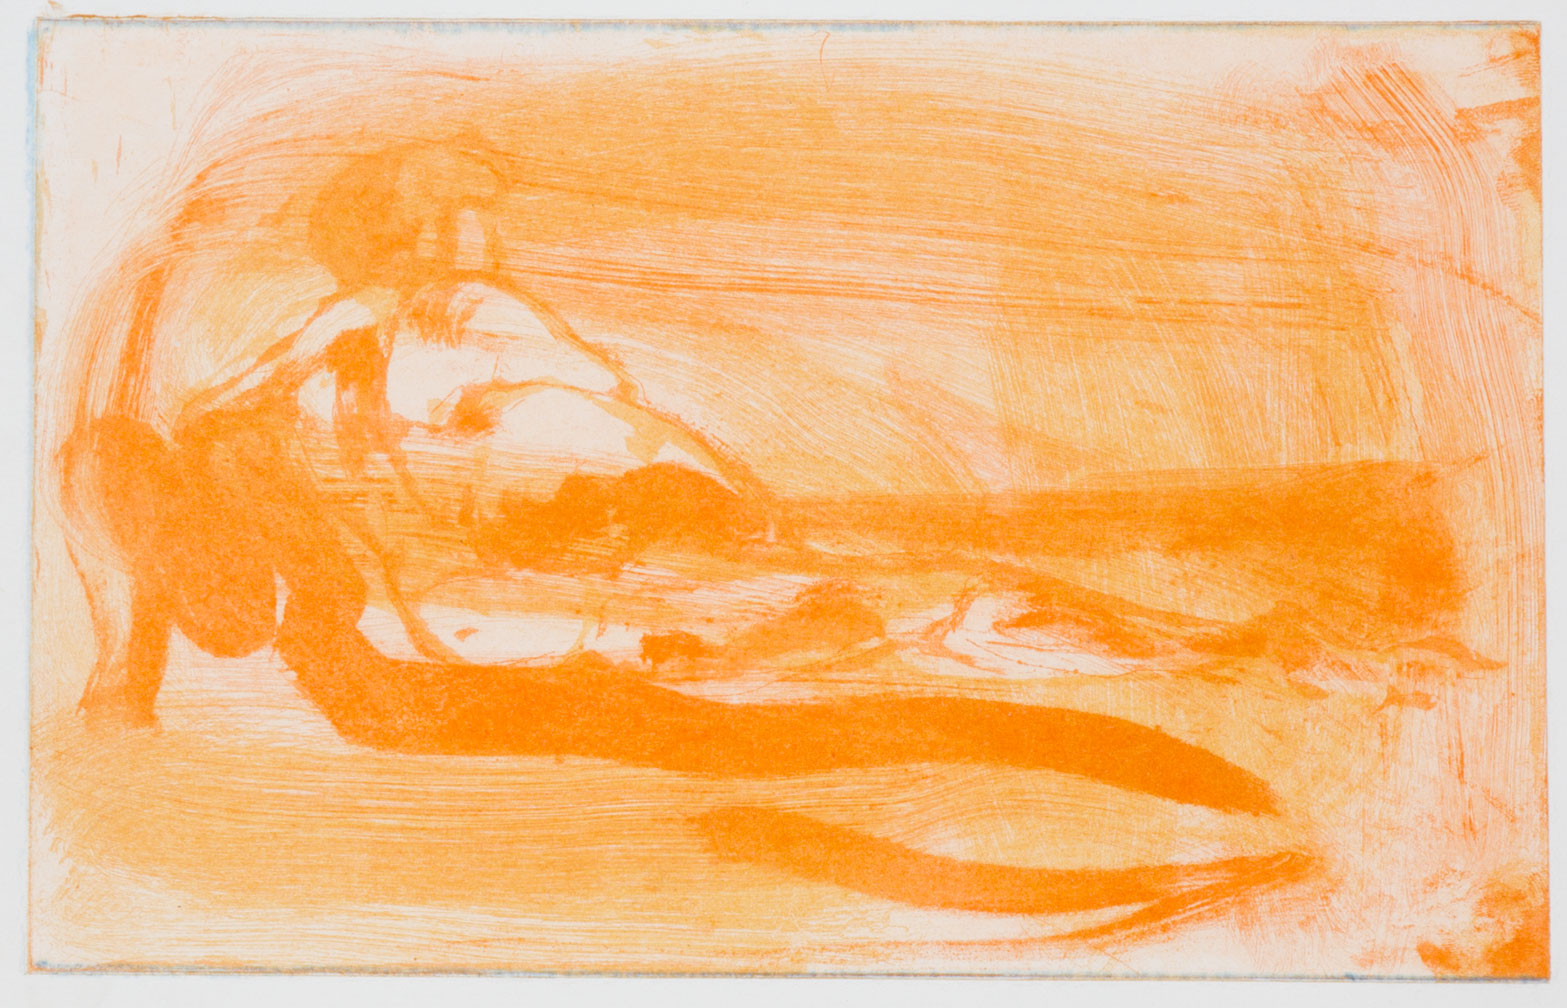 Floating Islands Proof for Puppet Tears, 1985. Study proof R, 6.25 x 9.75 inches